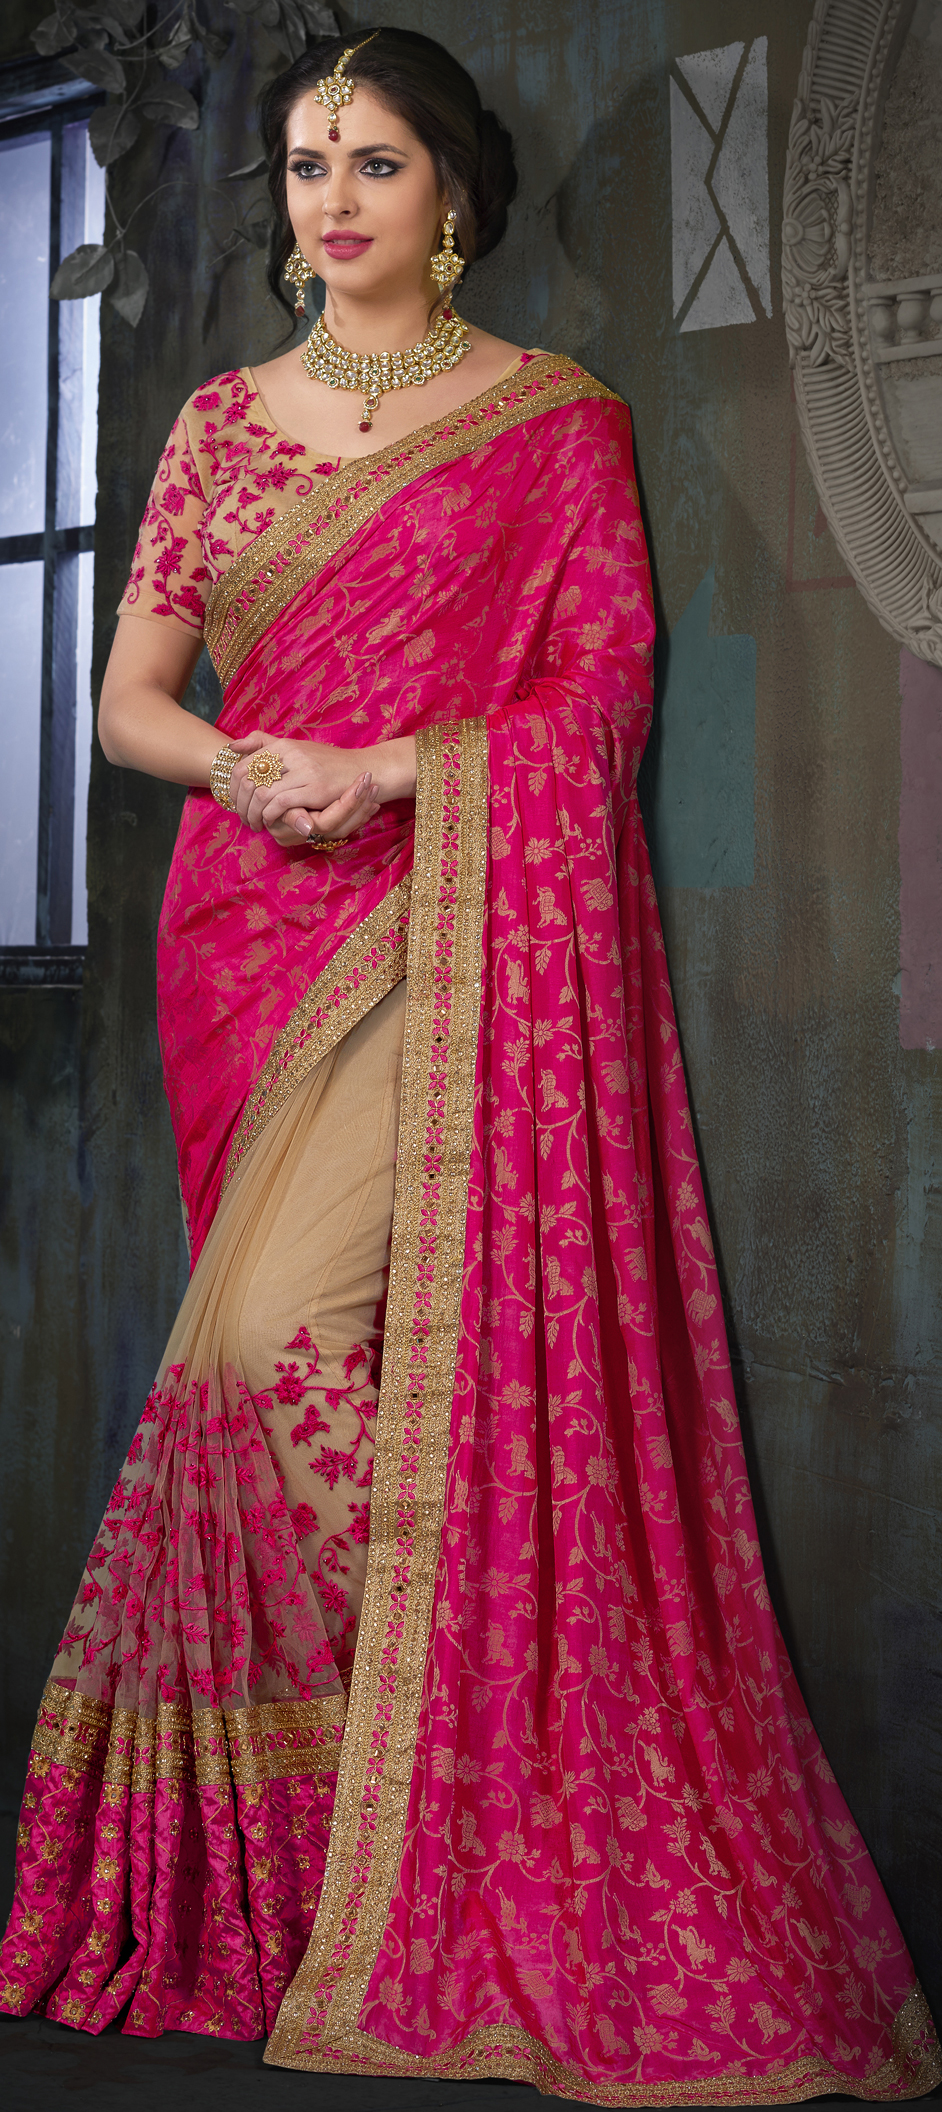 Latest Design Of Assam Type House: 738437: Beige And Brown, Pink And Majenta Color Family